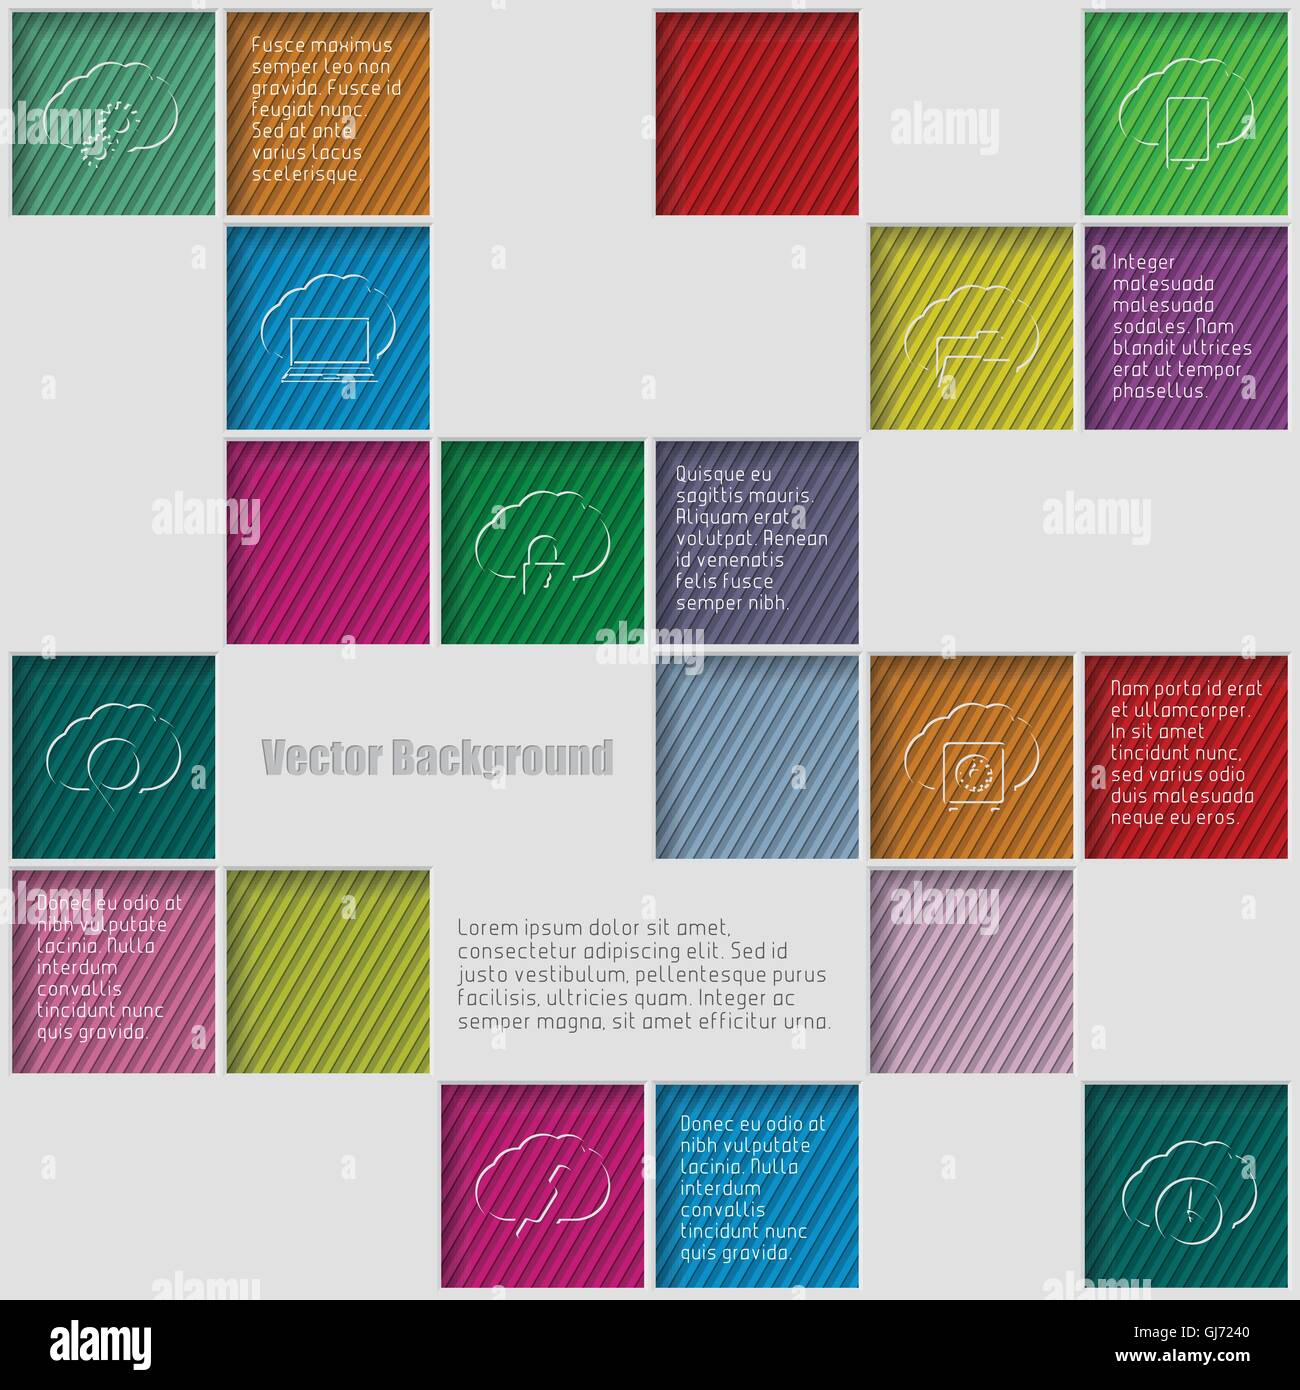 Squares background with infographic elements - Stock Image